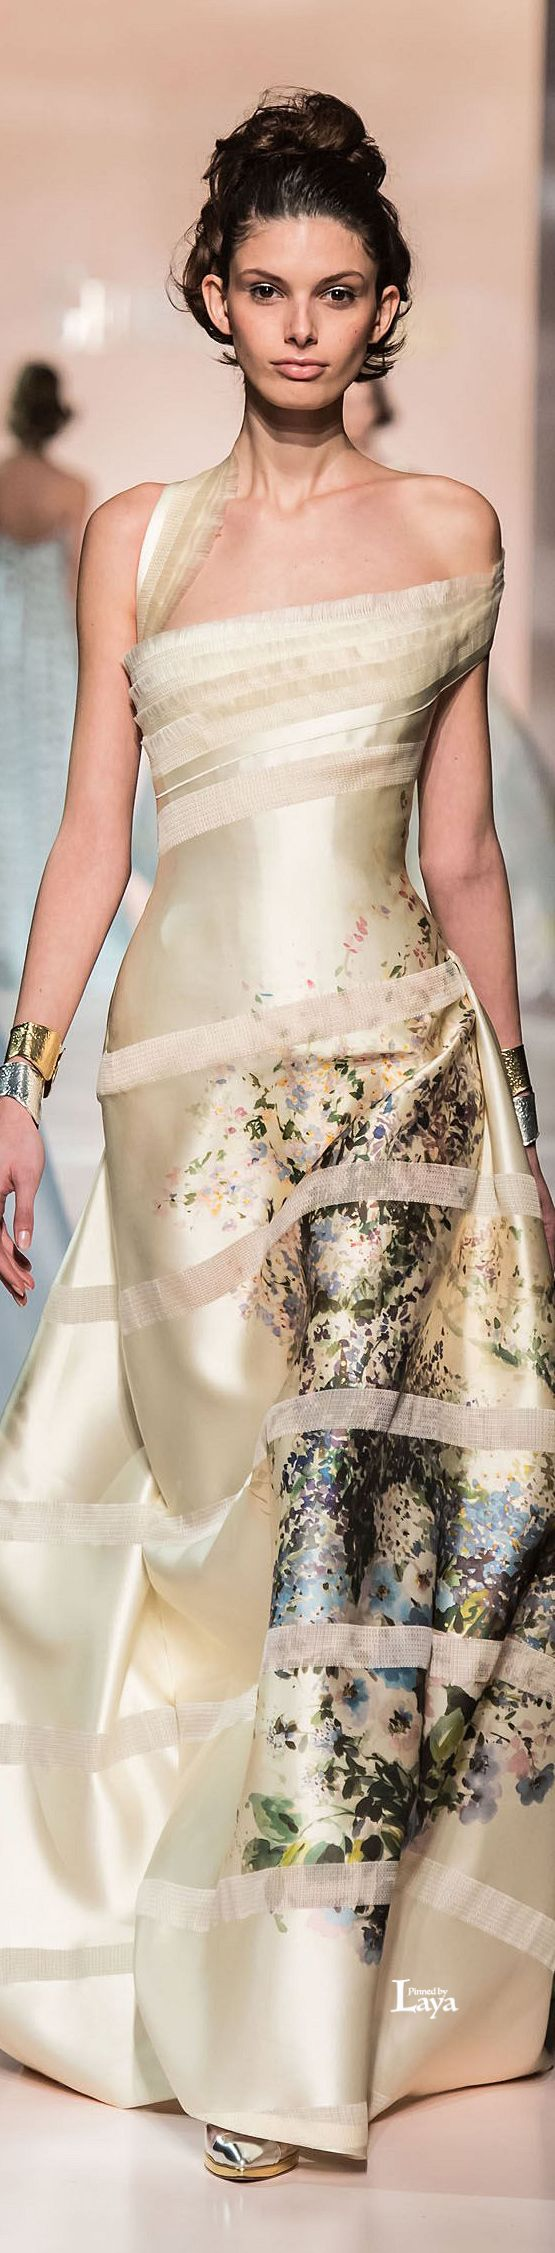 Georges Chakra - Spring-Summer 2015 Couture Collection Trim on bias